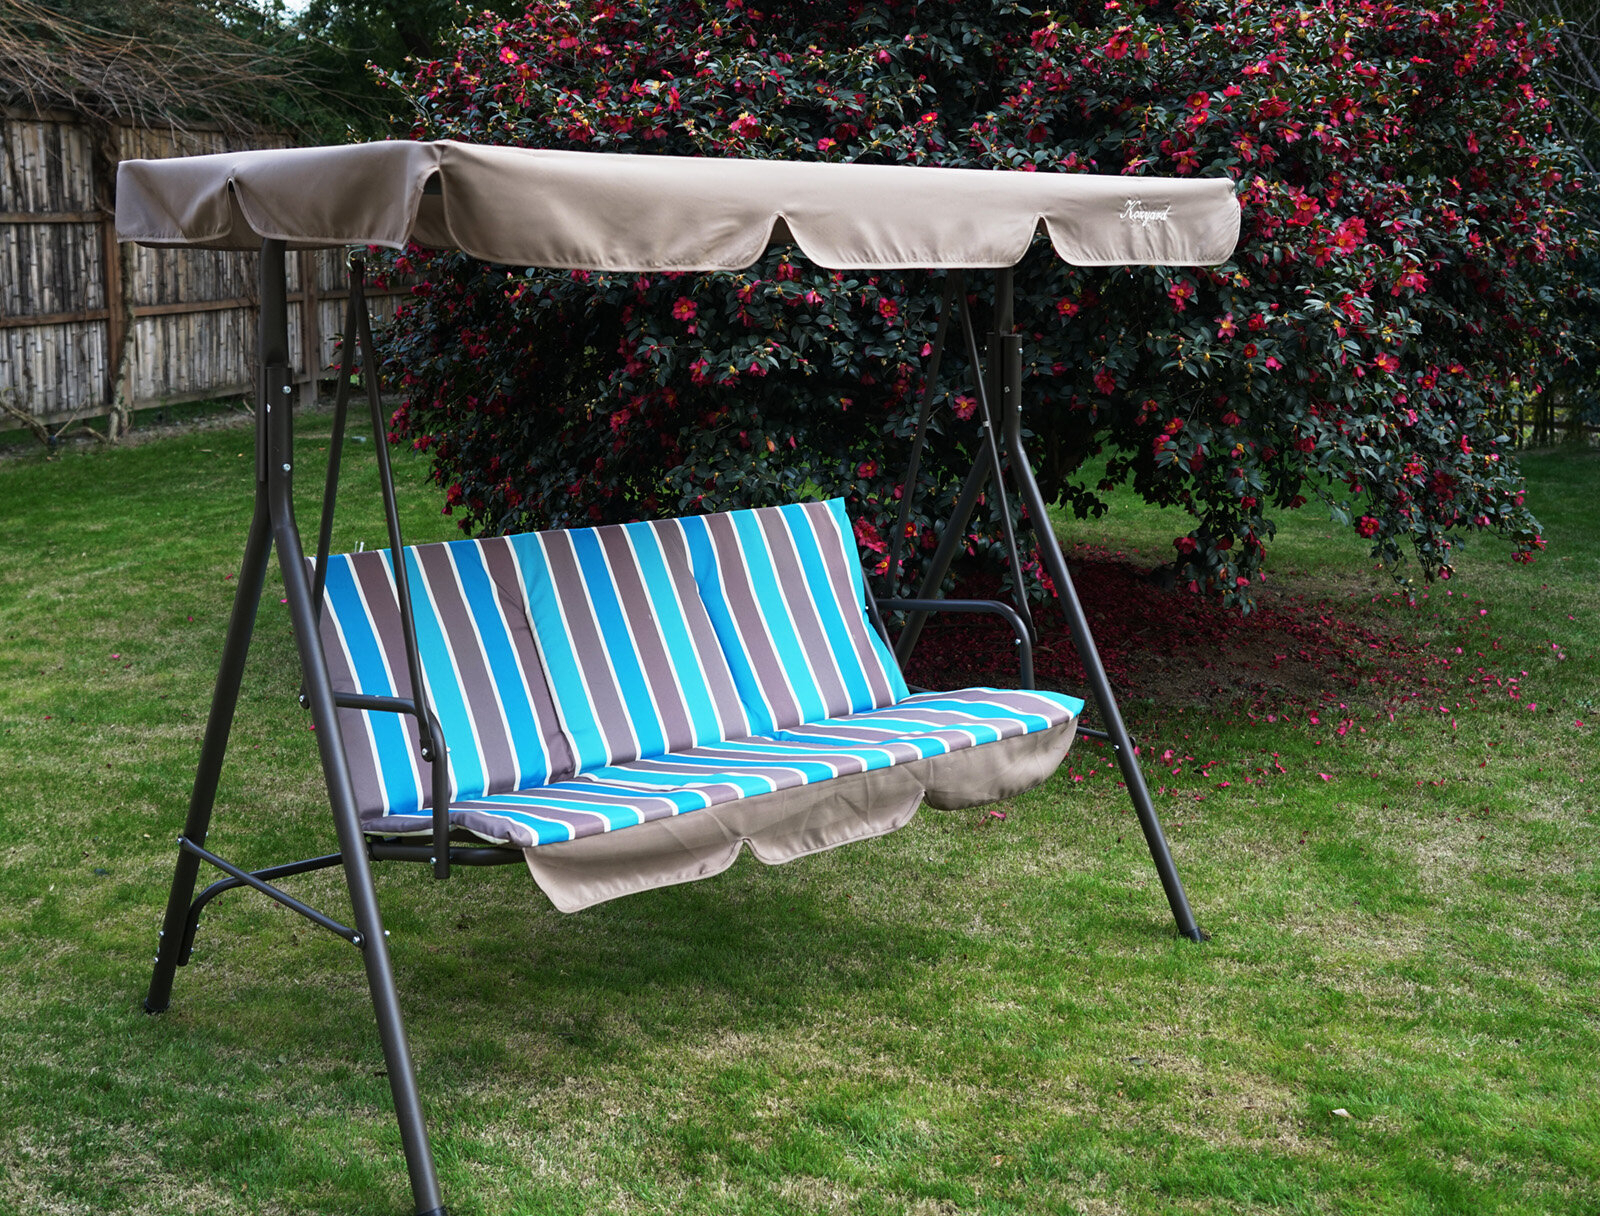 Alicia Patio Swing Chair With 3 Comfortable Cushion Seats And Strong Weather Resistant Powder Coated Steel Frame (Colour: Red Stripe) For 3 Person Red With Brown Powder Coated Frame Steel Outdoor Swings (View 7 of 25)